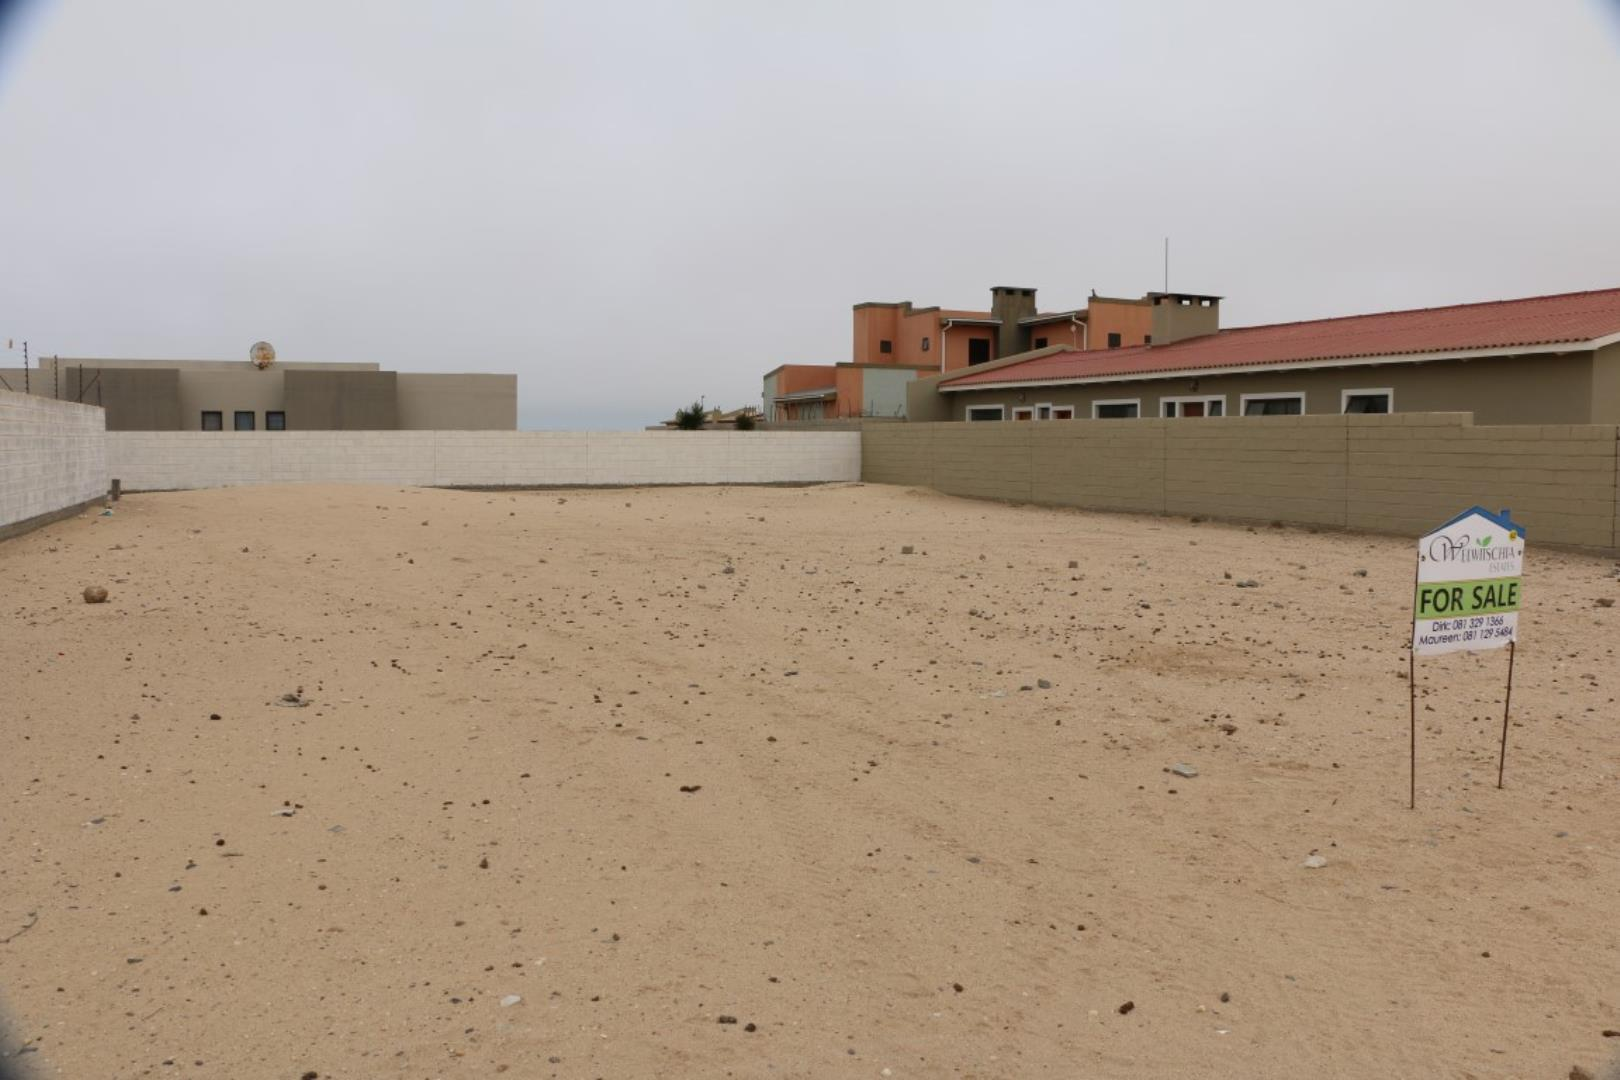 Vacant Land for Sale in Ocean View, Swakopmund - Erongo